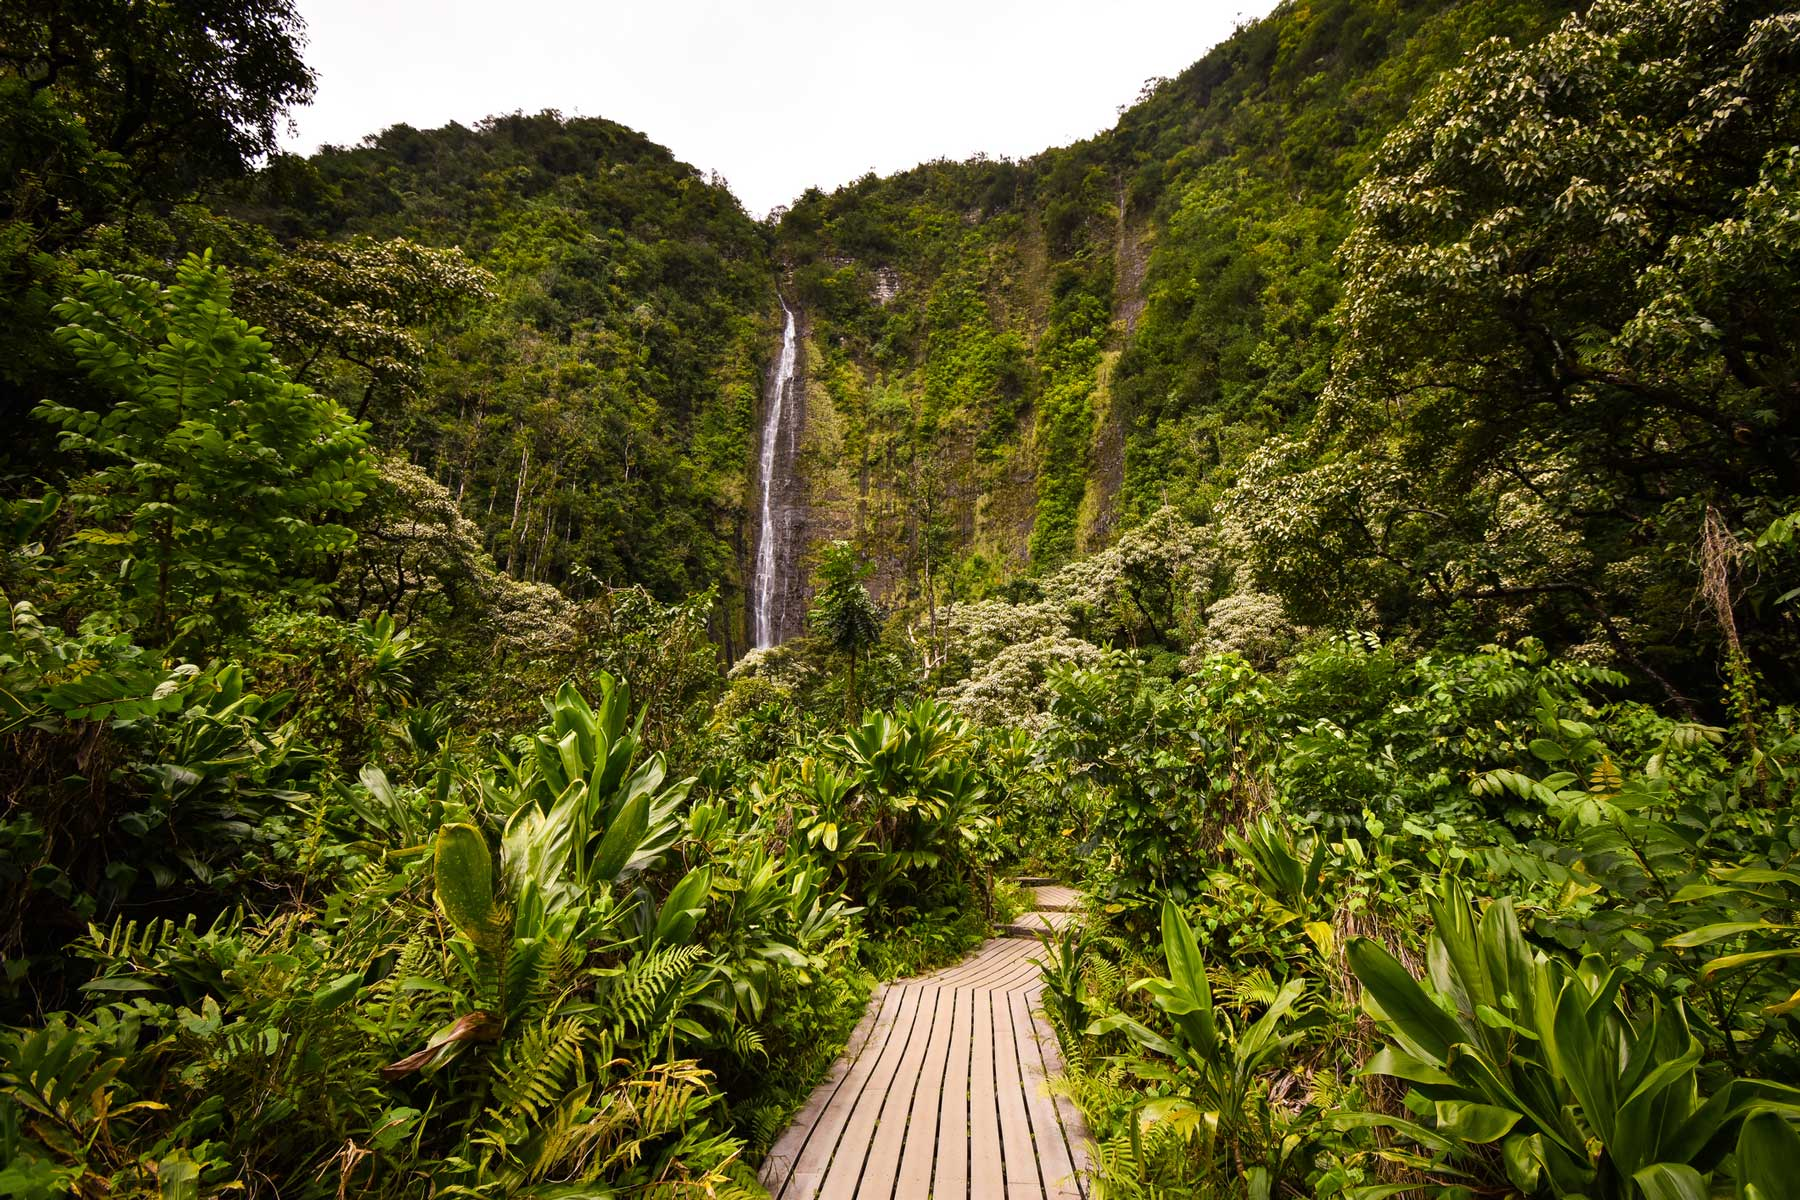 Wooden footbridge in the overgrown tropical forest to the Makahiku waterfall in Maui, Hawaii